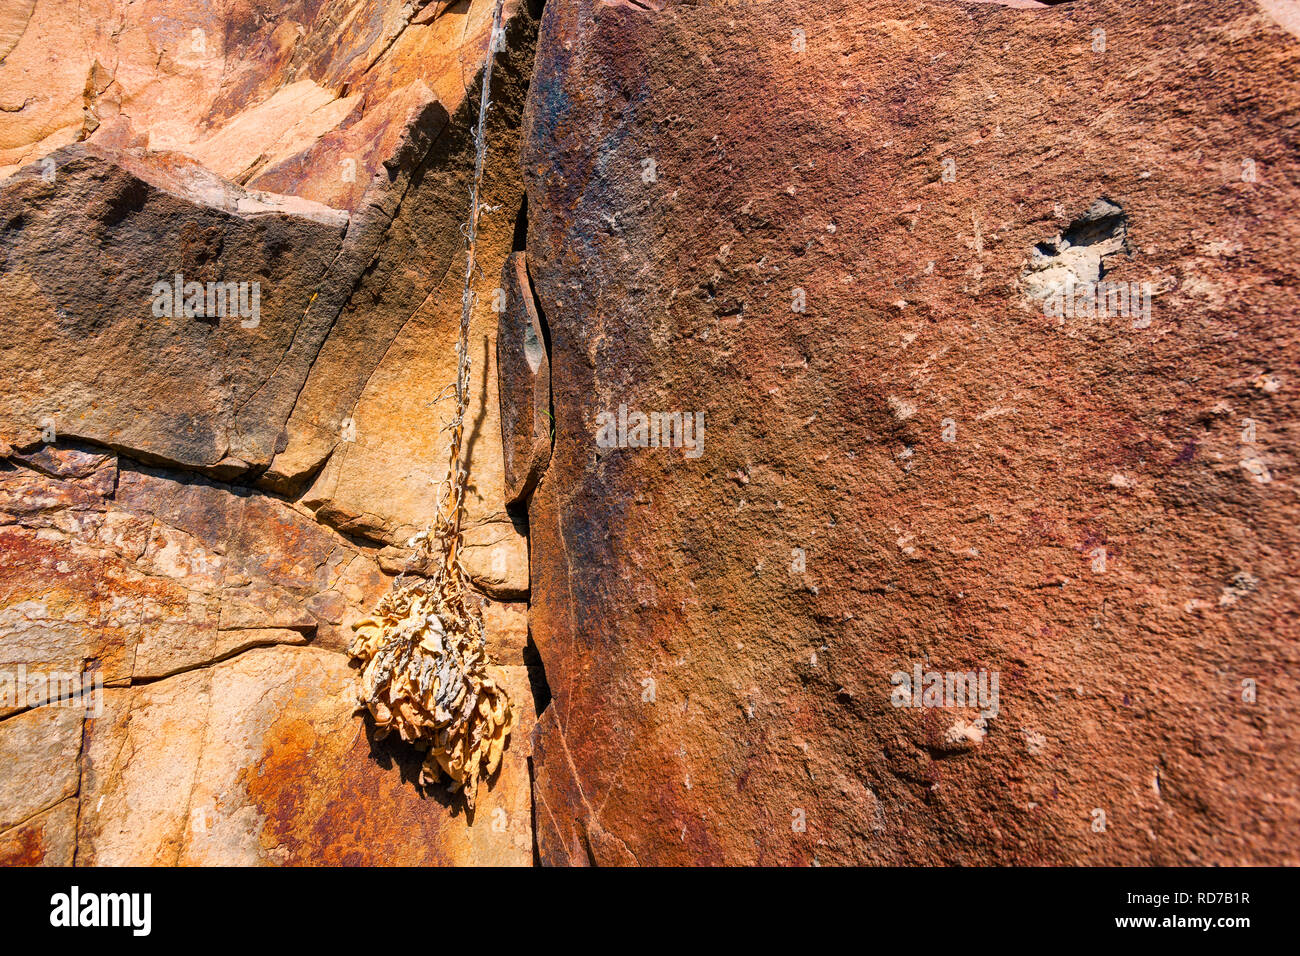 A close up of a natural rock wall and a dried plant. - Stock Image